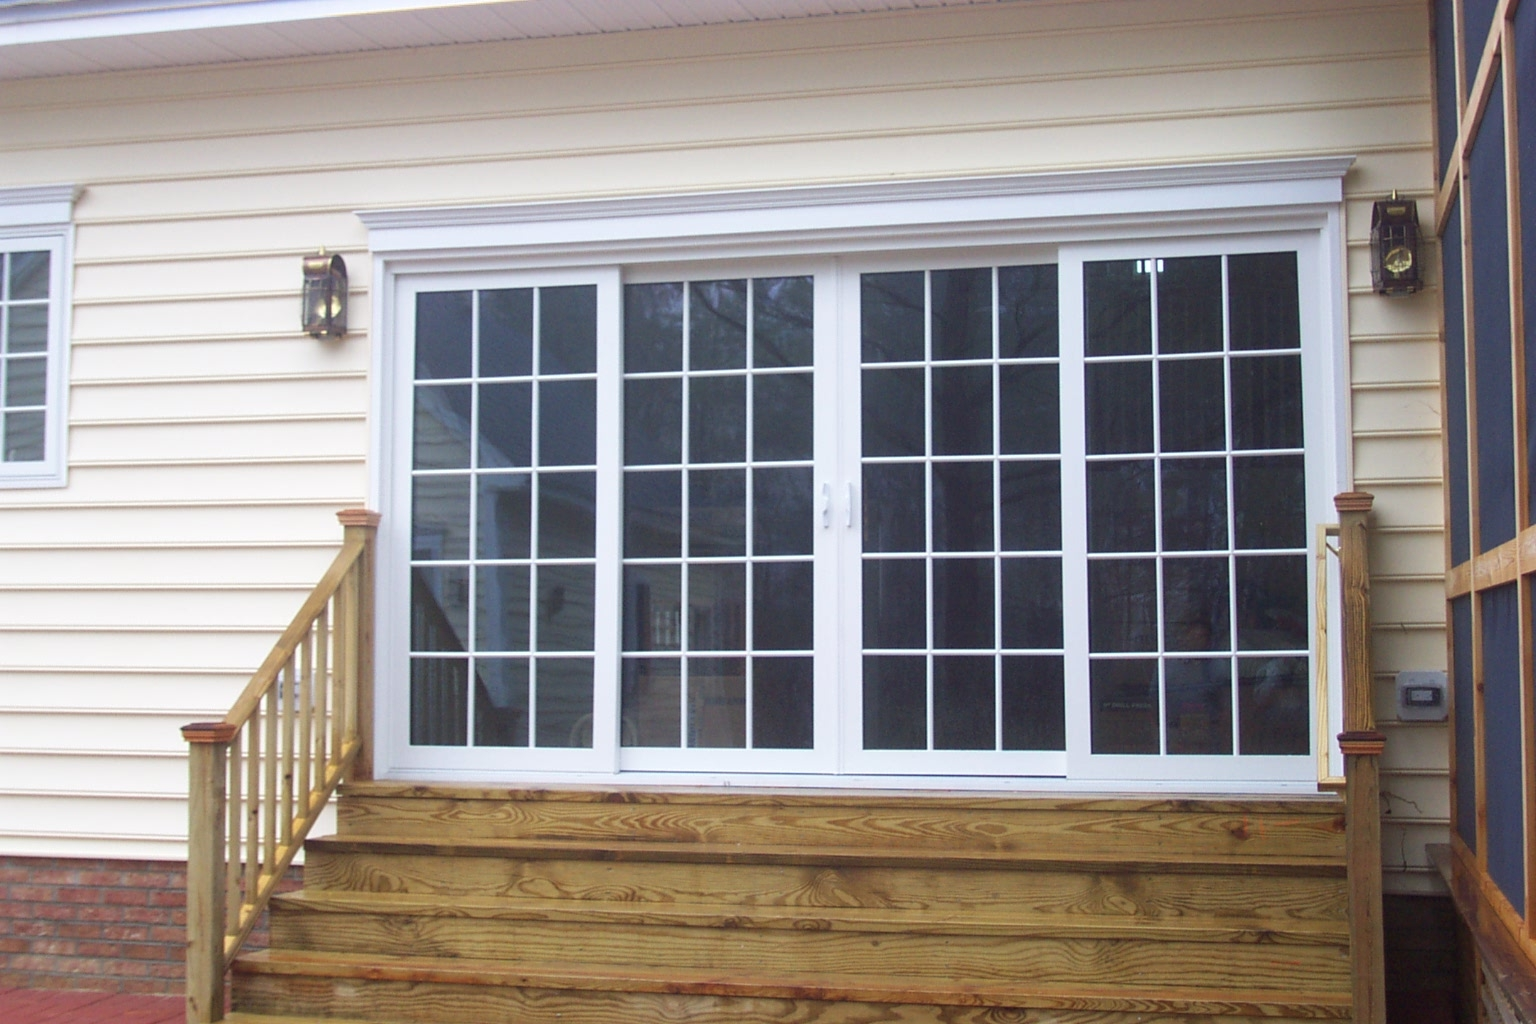 Aspen Home Improvements Replacement Windows Doors Siding Experts What To Consider When